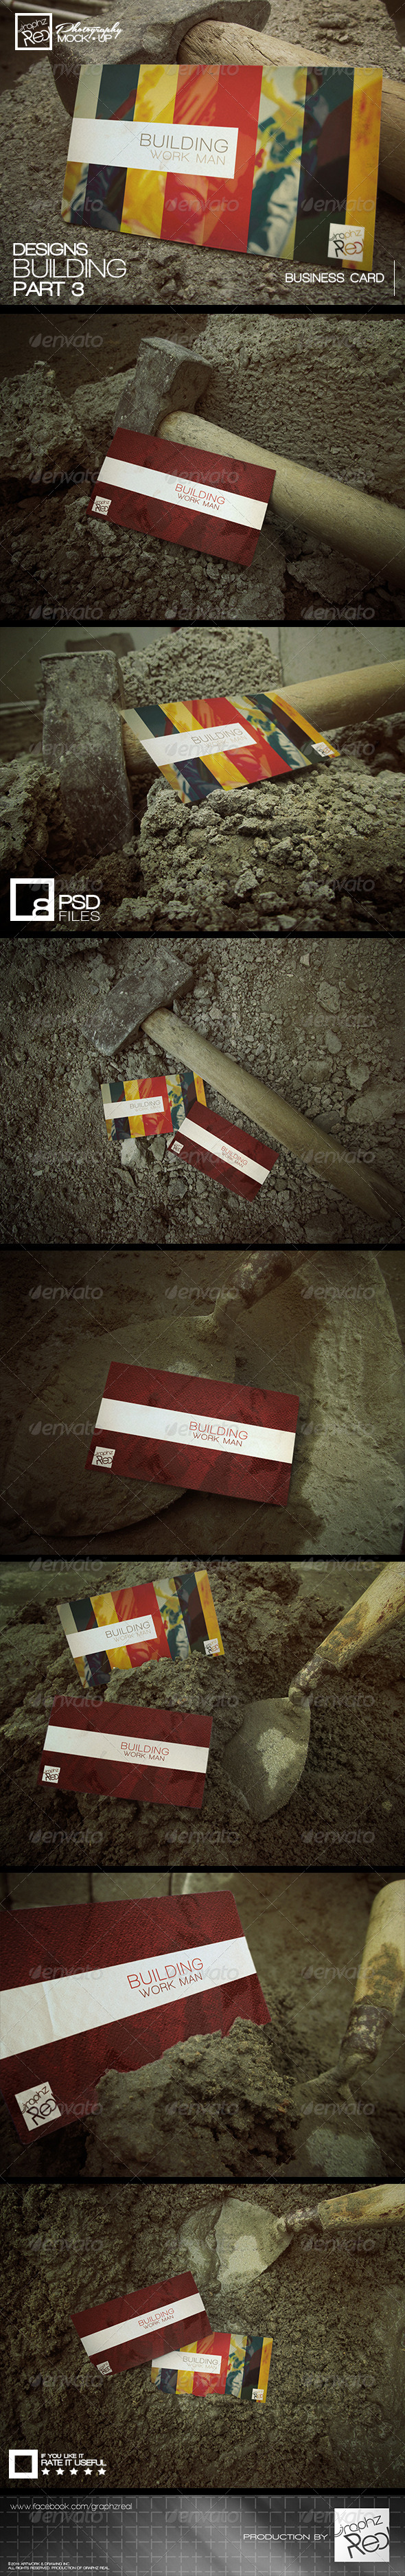 GraphicRiver Mock-up 006 8454212